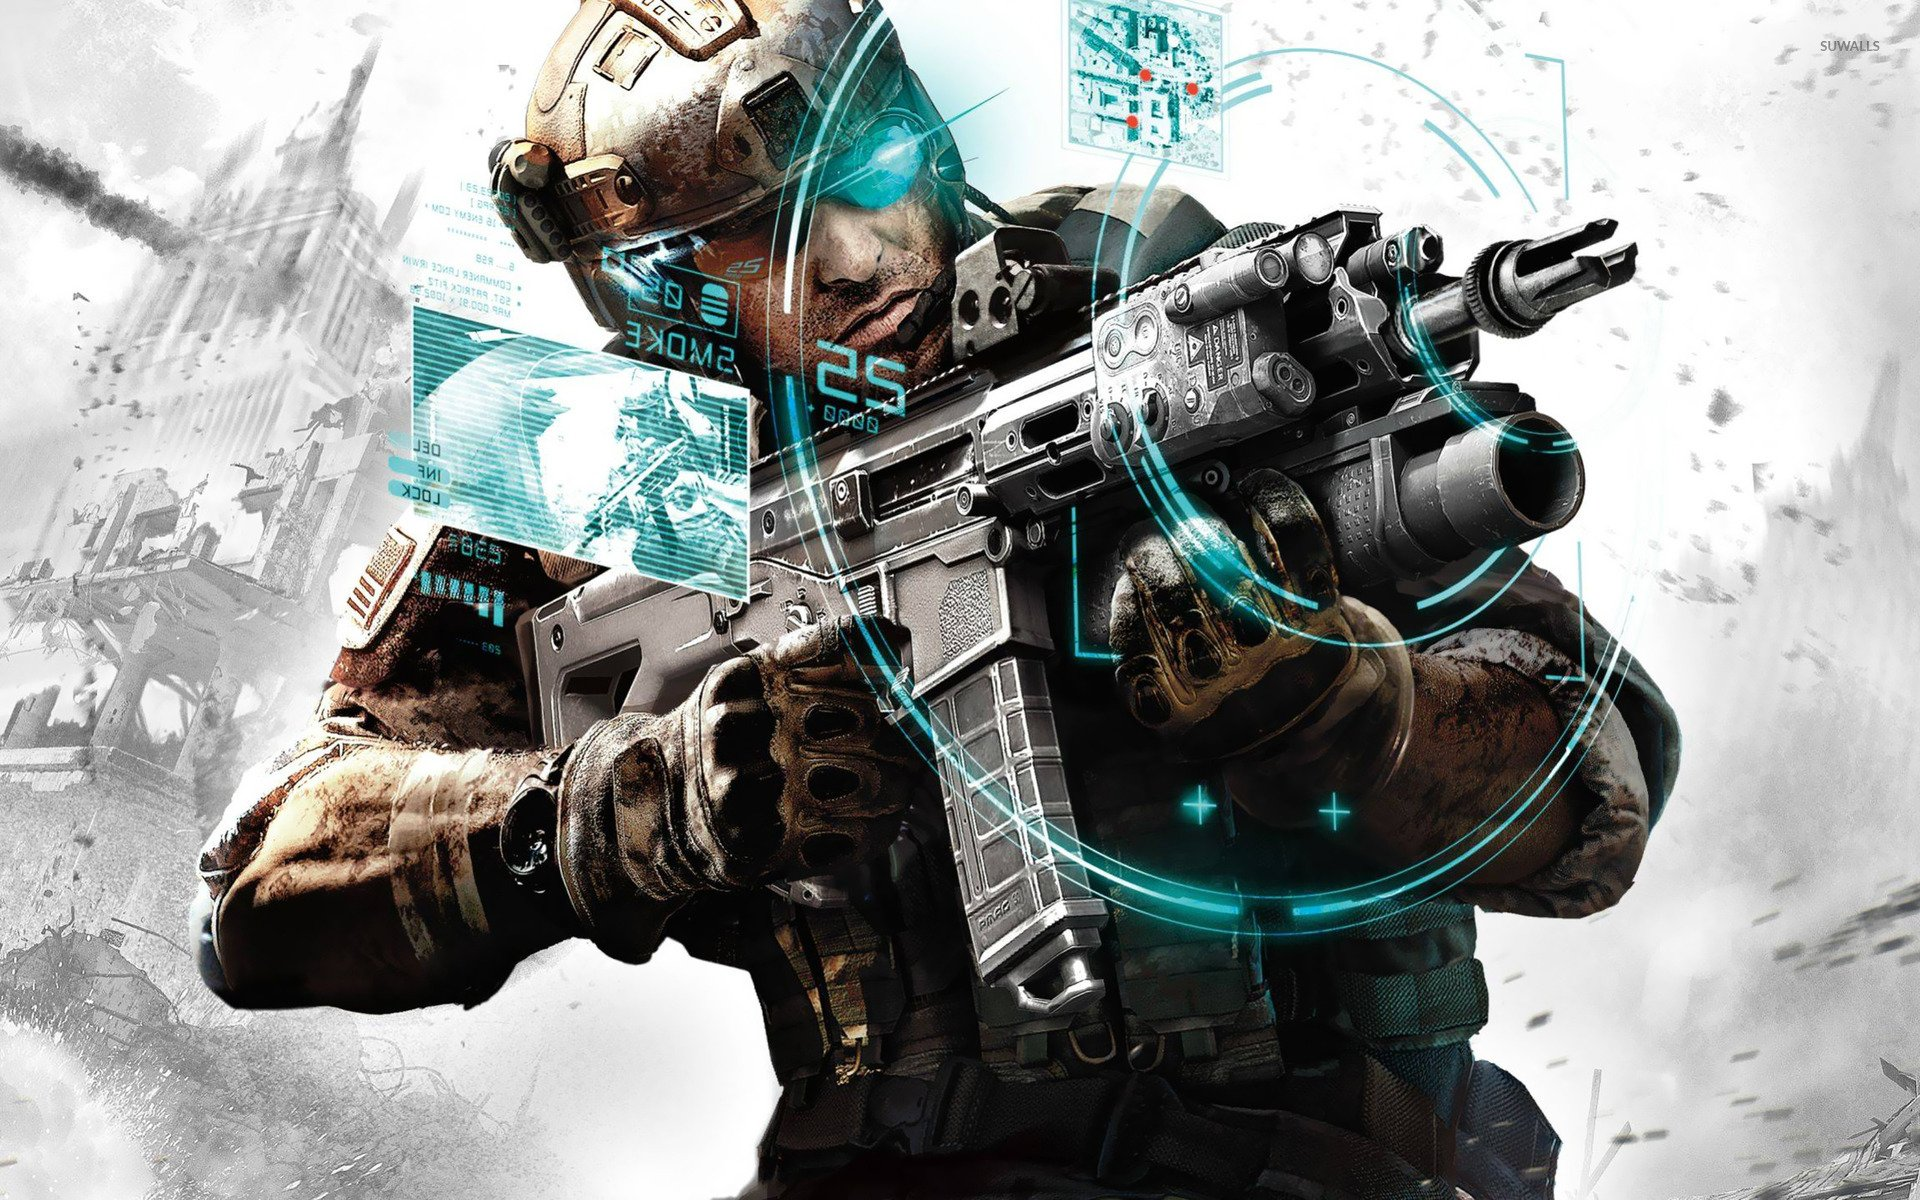 Tom Clancys Ghost Recon [3] wallpaper   Game wallpapers 1920x1200